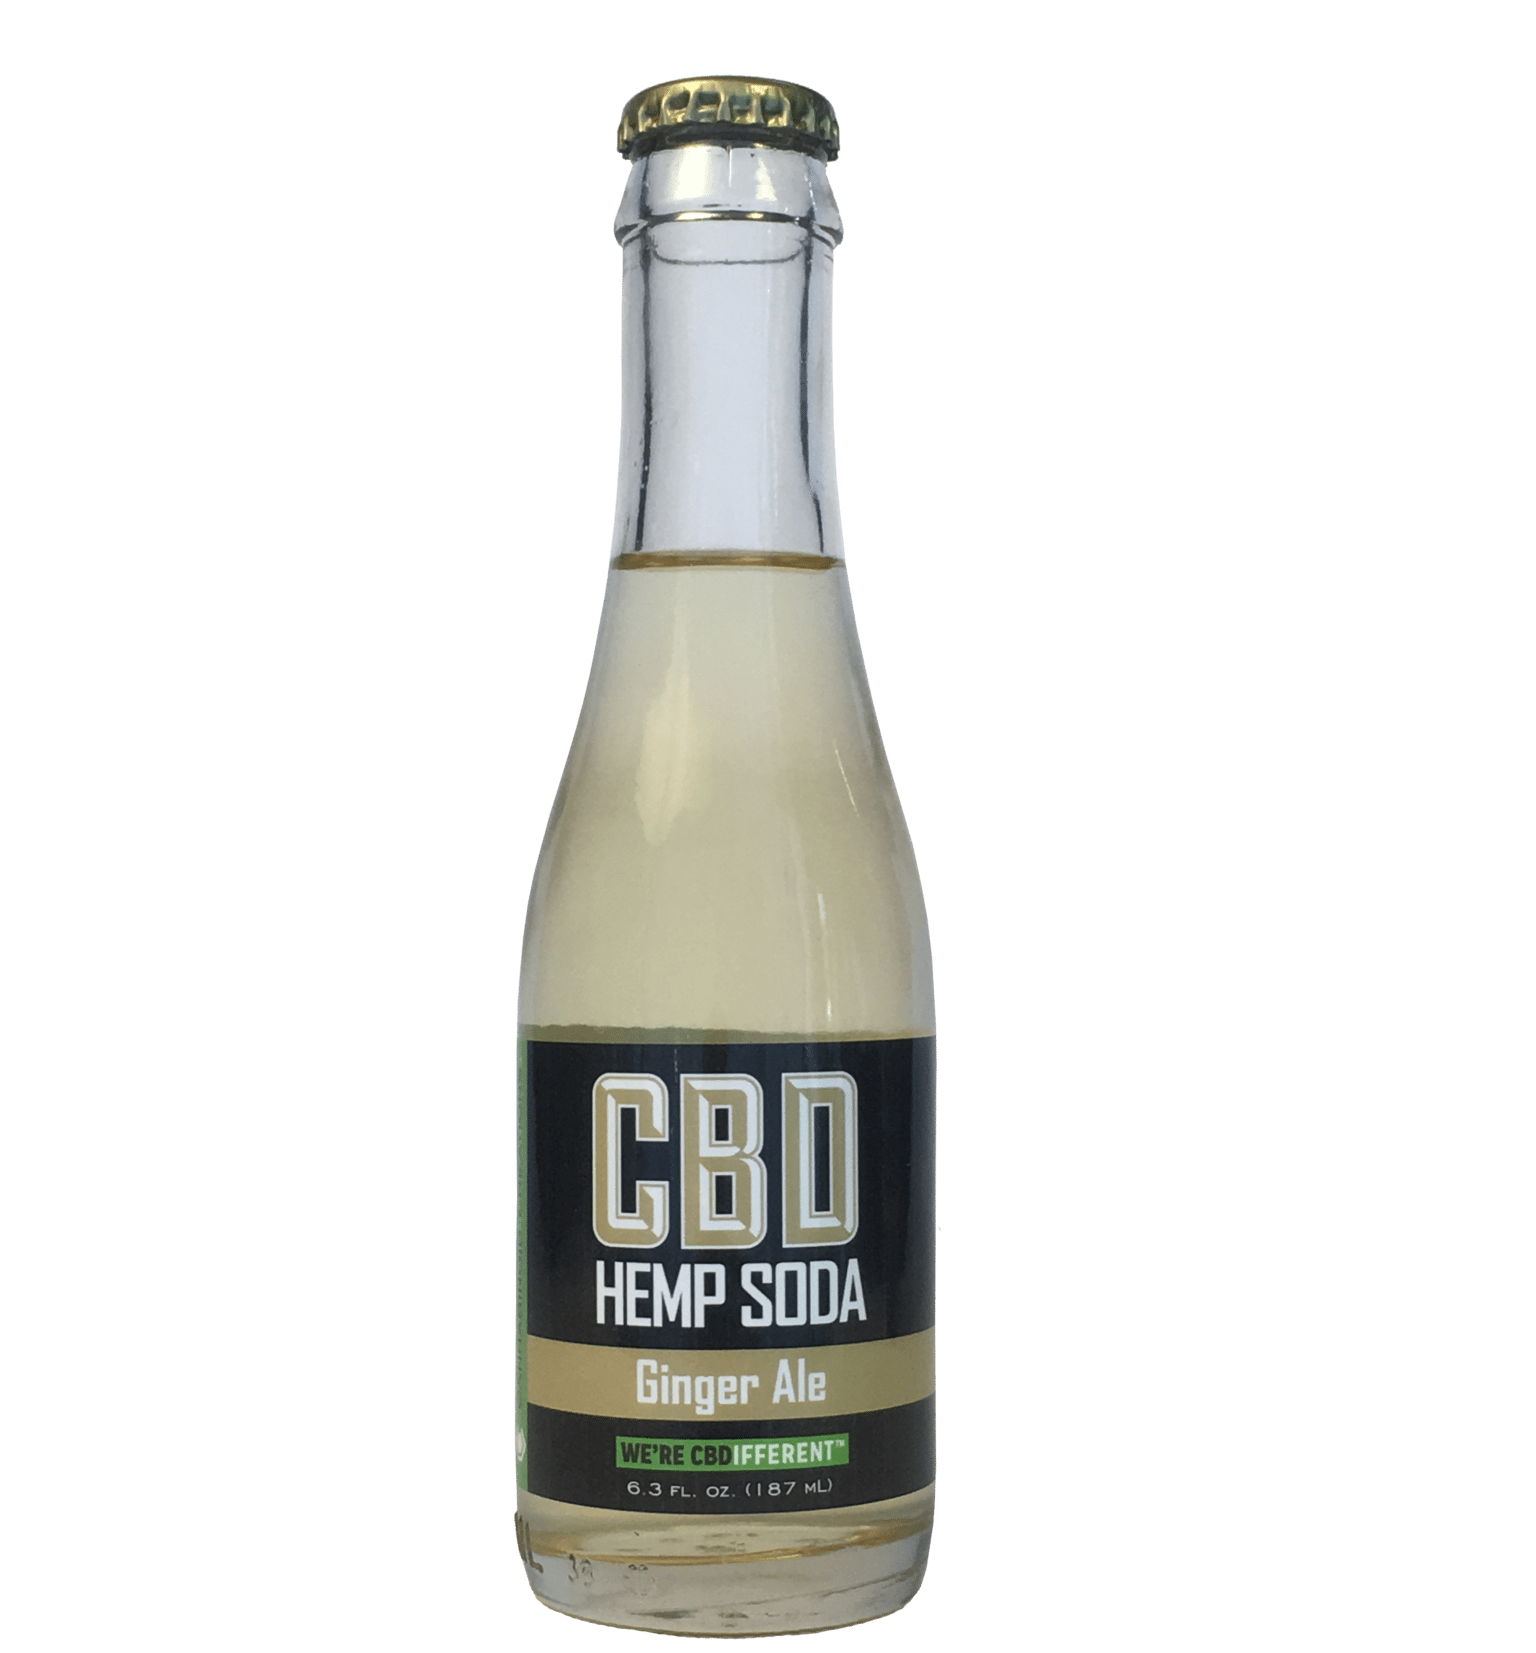 Hemp CBD Ginger Ale - Hemp Soda, CBD Pop